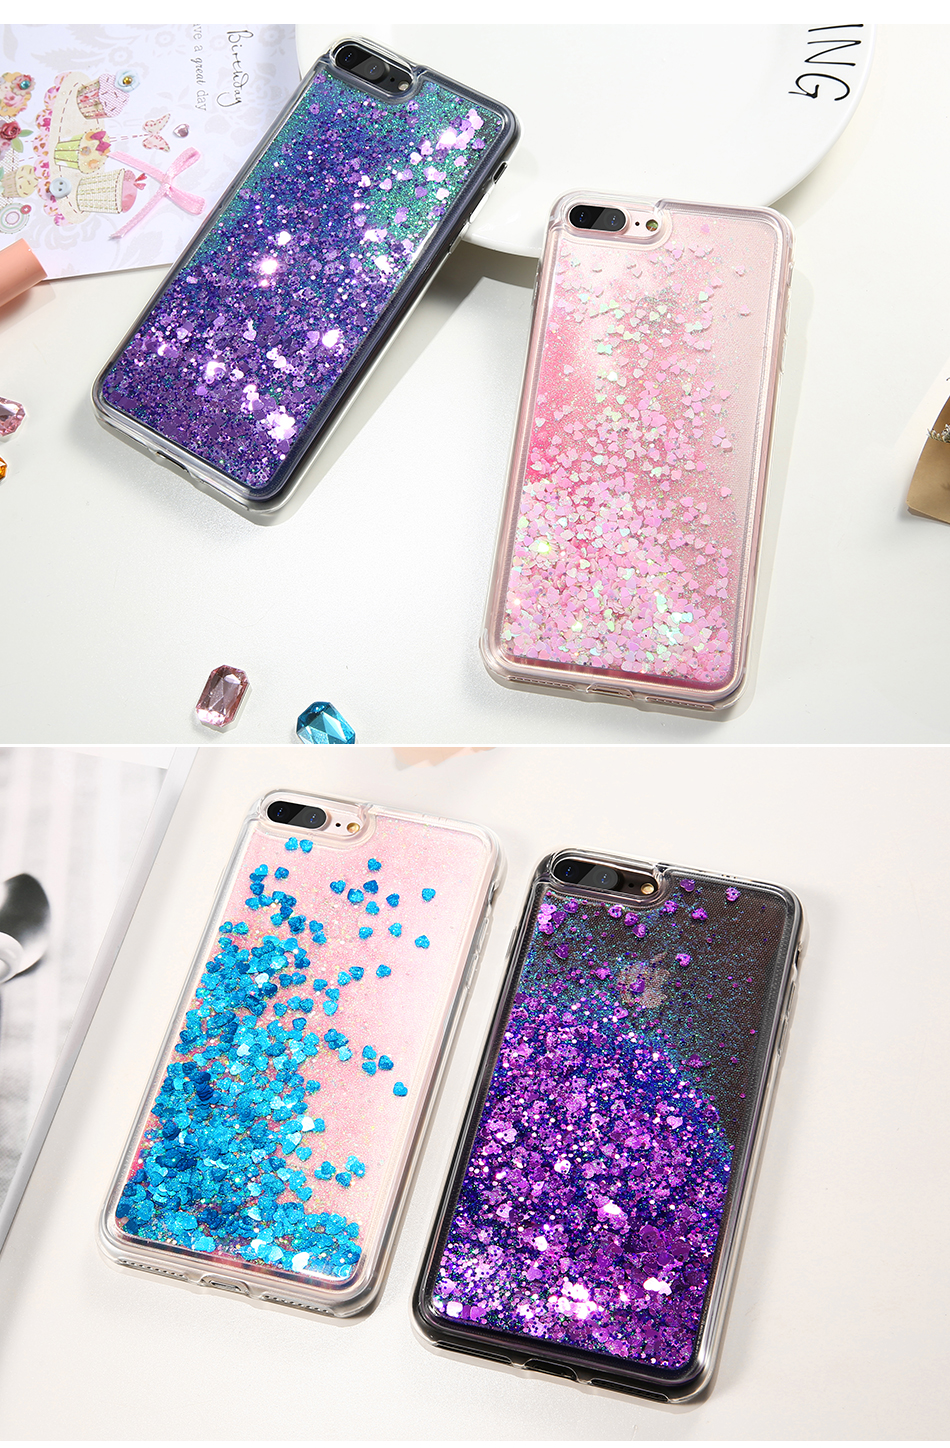 DOEES Bling Liquid Quicksand Phone Case For iPhone 7 7 Plus Shiny Sequin Soft Silicone Case Cover For iPhone 5 5S SE 6 6s Plus (3)